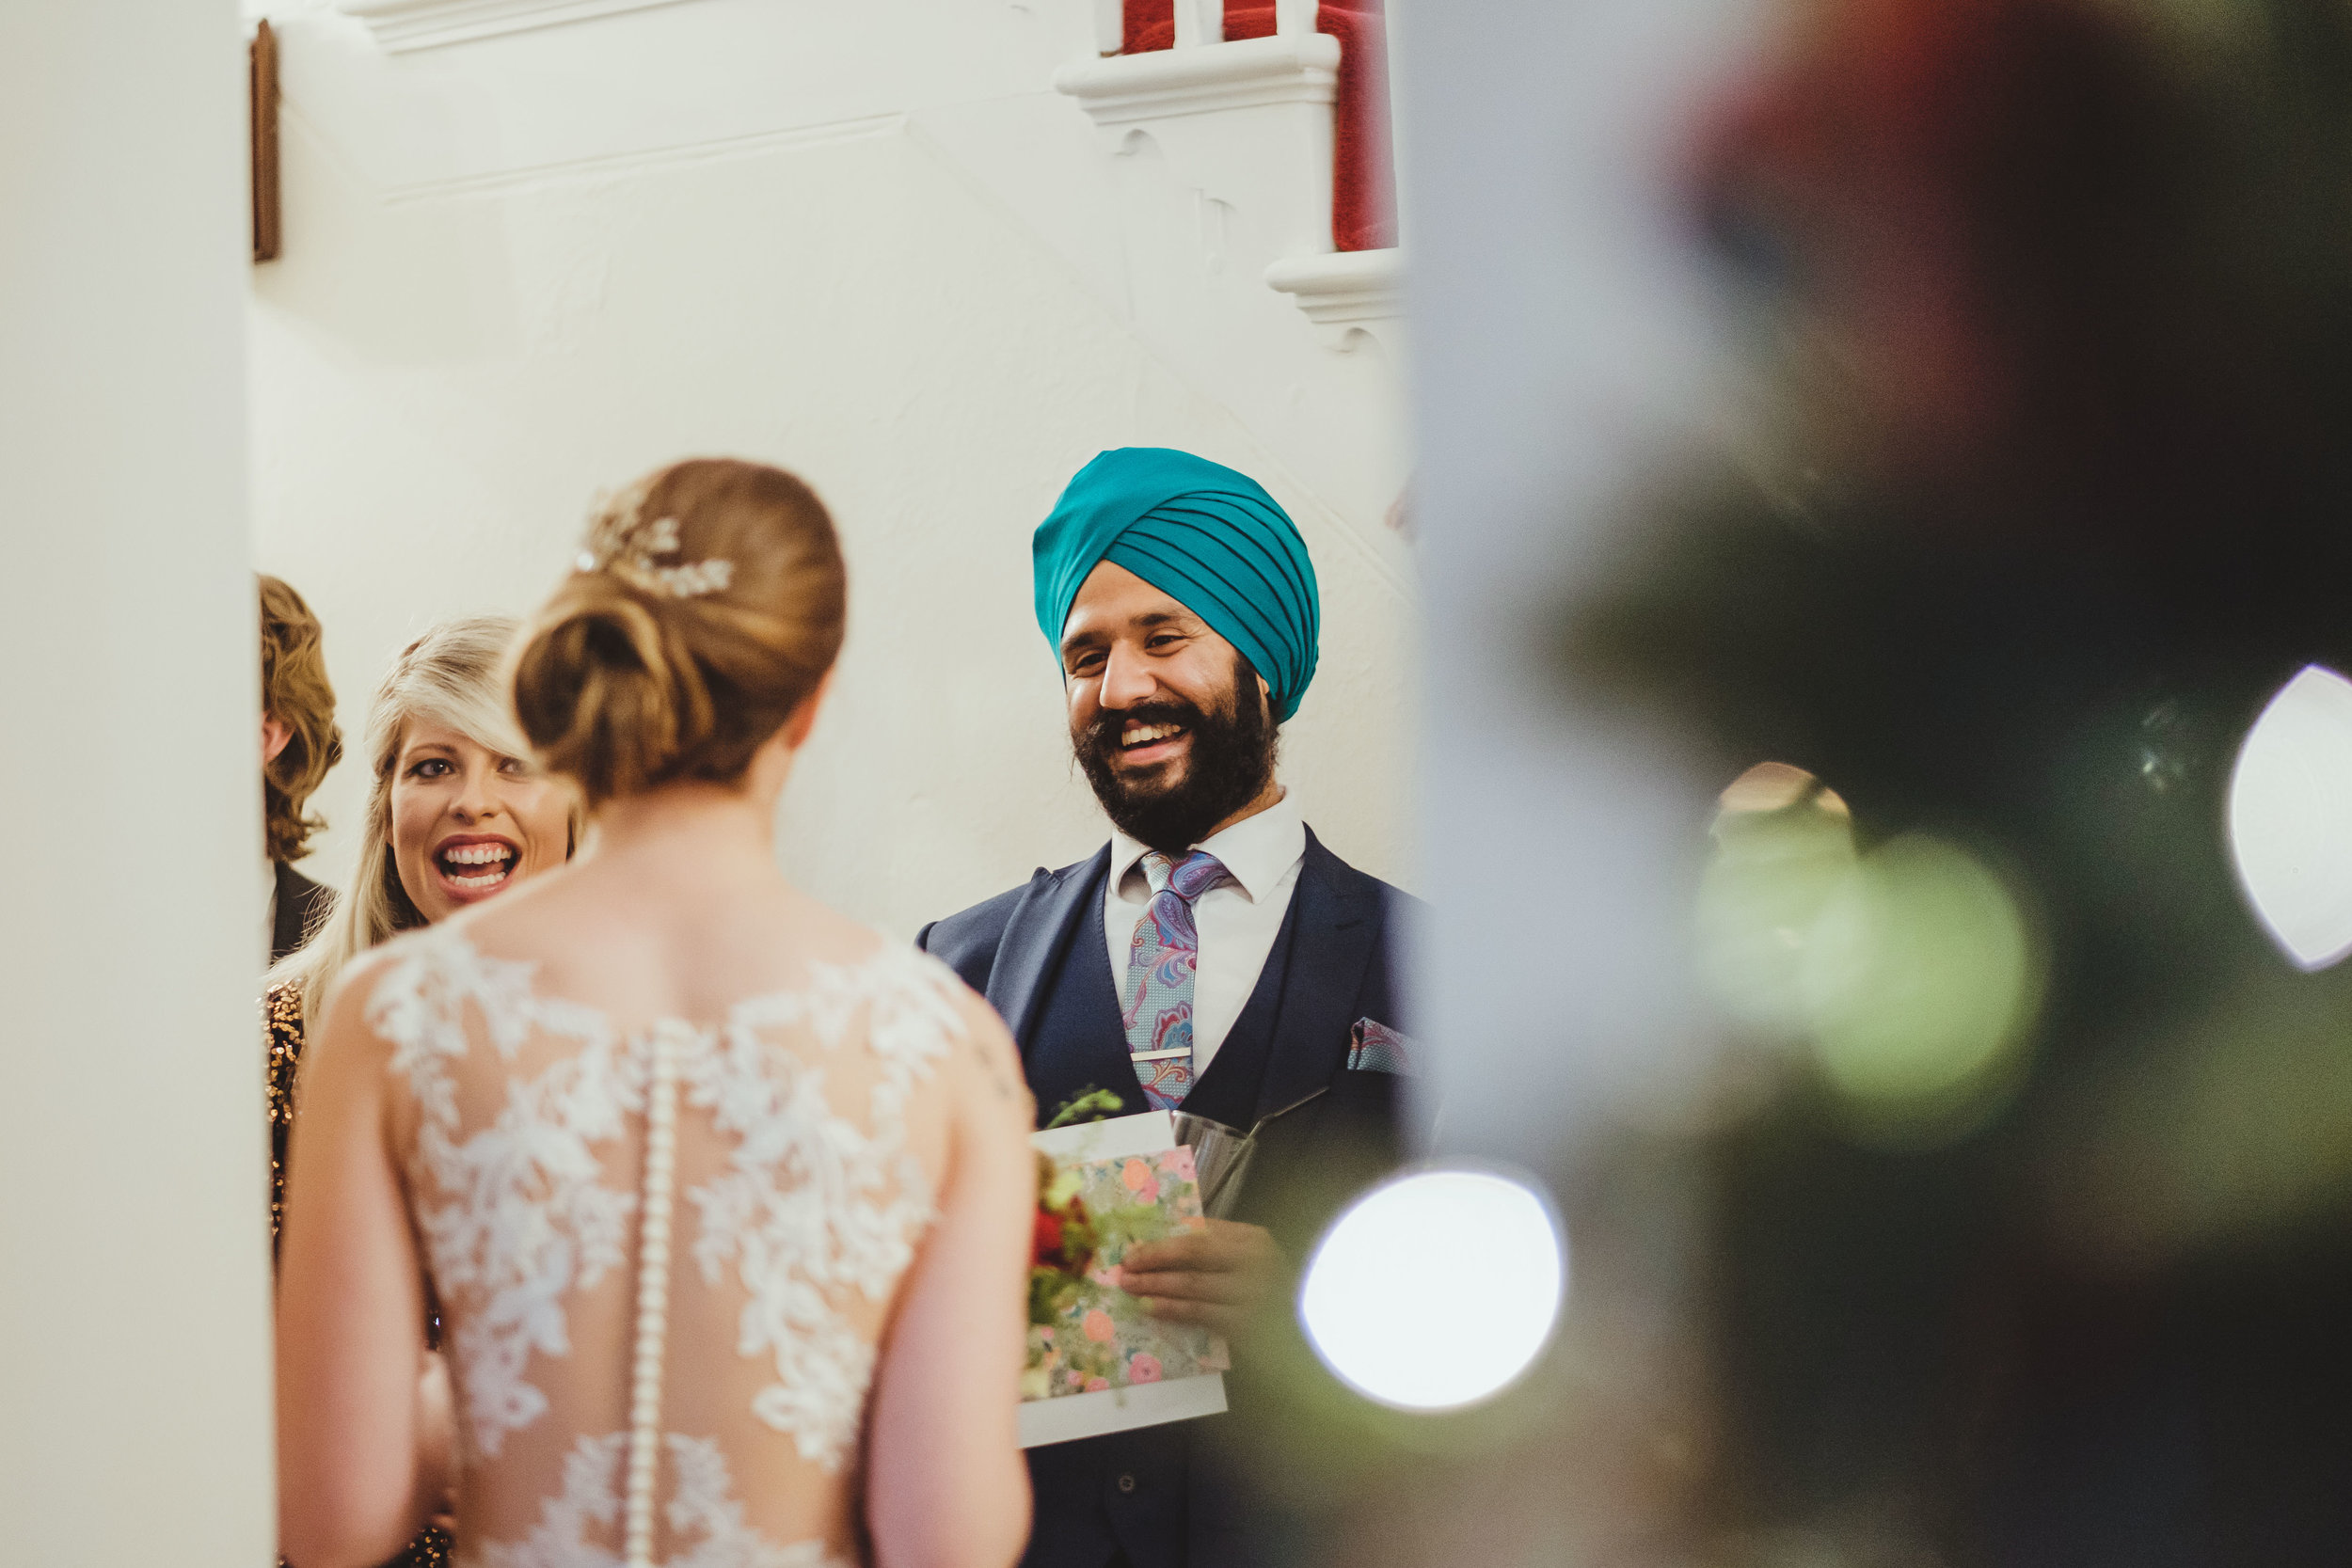 Bride chats with wedding guest wearing turban with Christmas tree lights in foreground